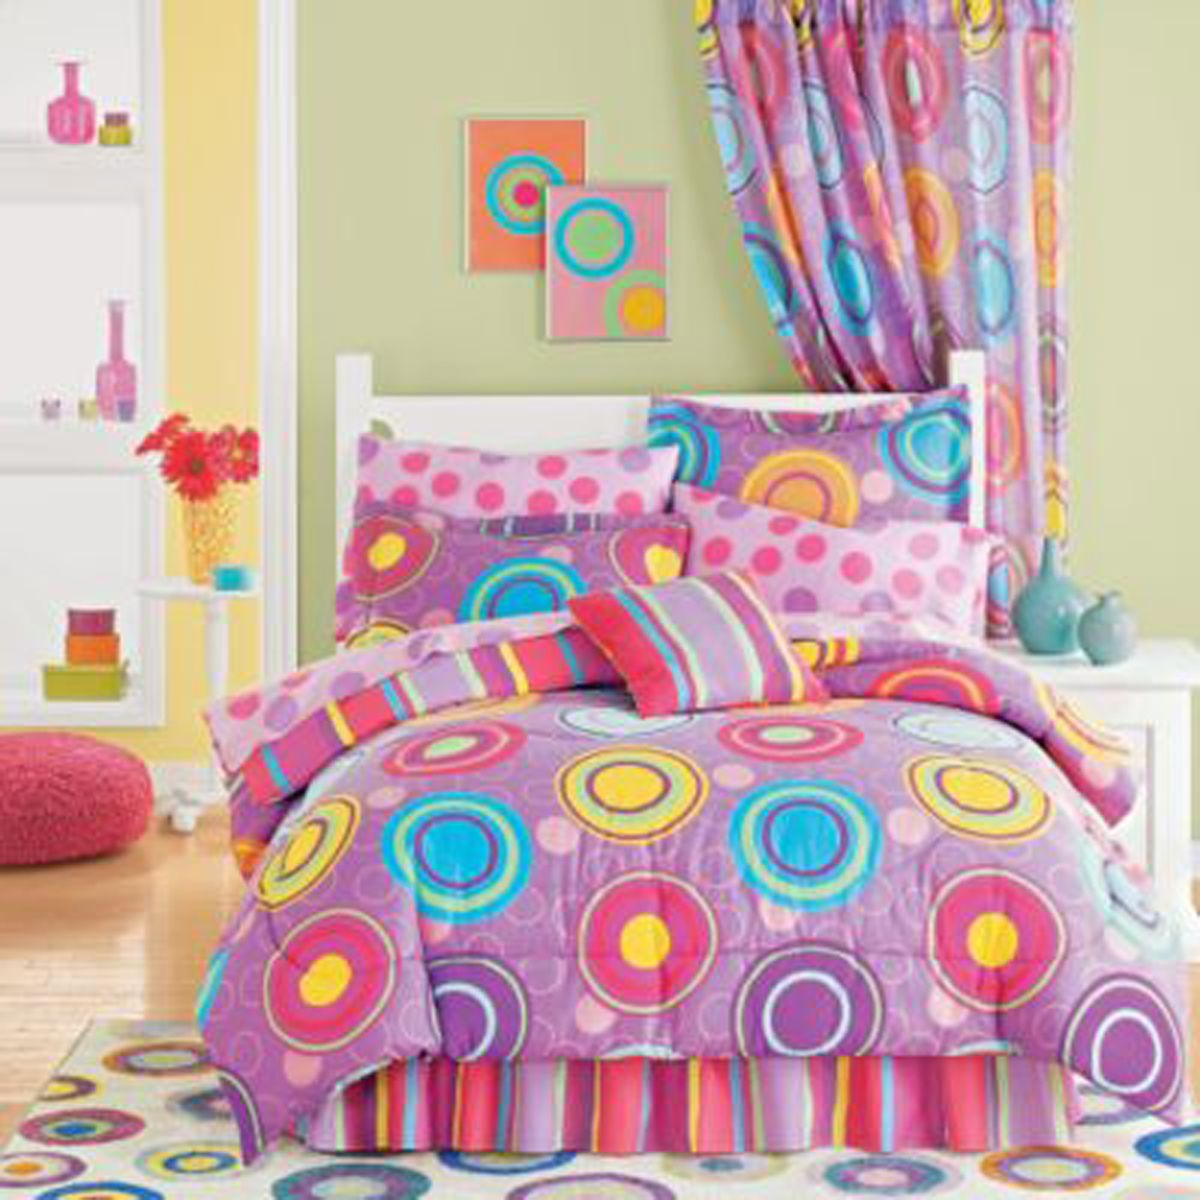 17 Best images about beautiful room decor ideas for toddler girls on  Pinterest   Is 1  Contemporary curtains and Decorating ideas. 17 Best images about beautiful room decor ideas for toddler girls